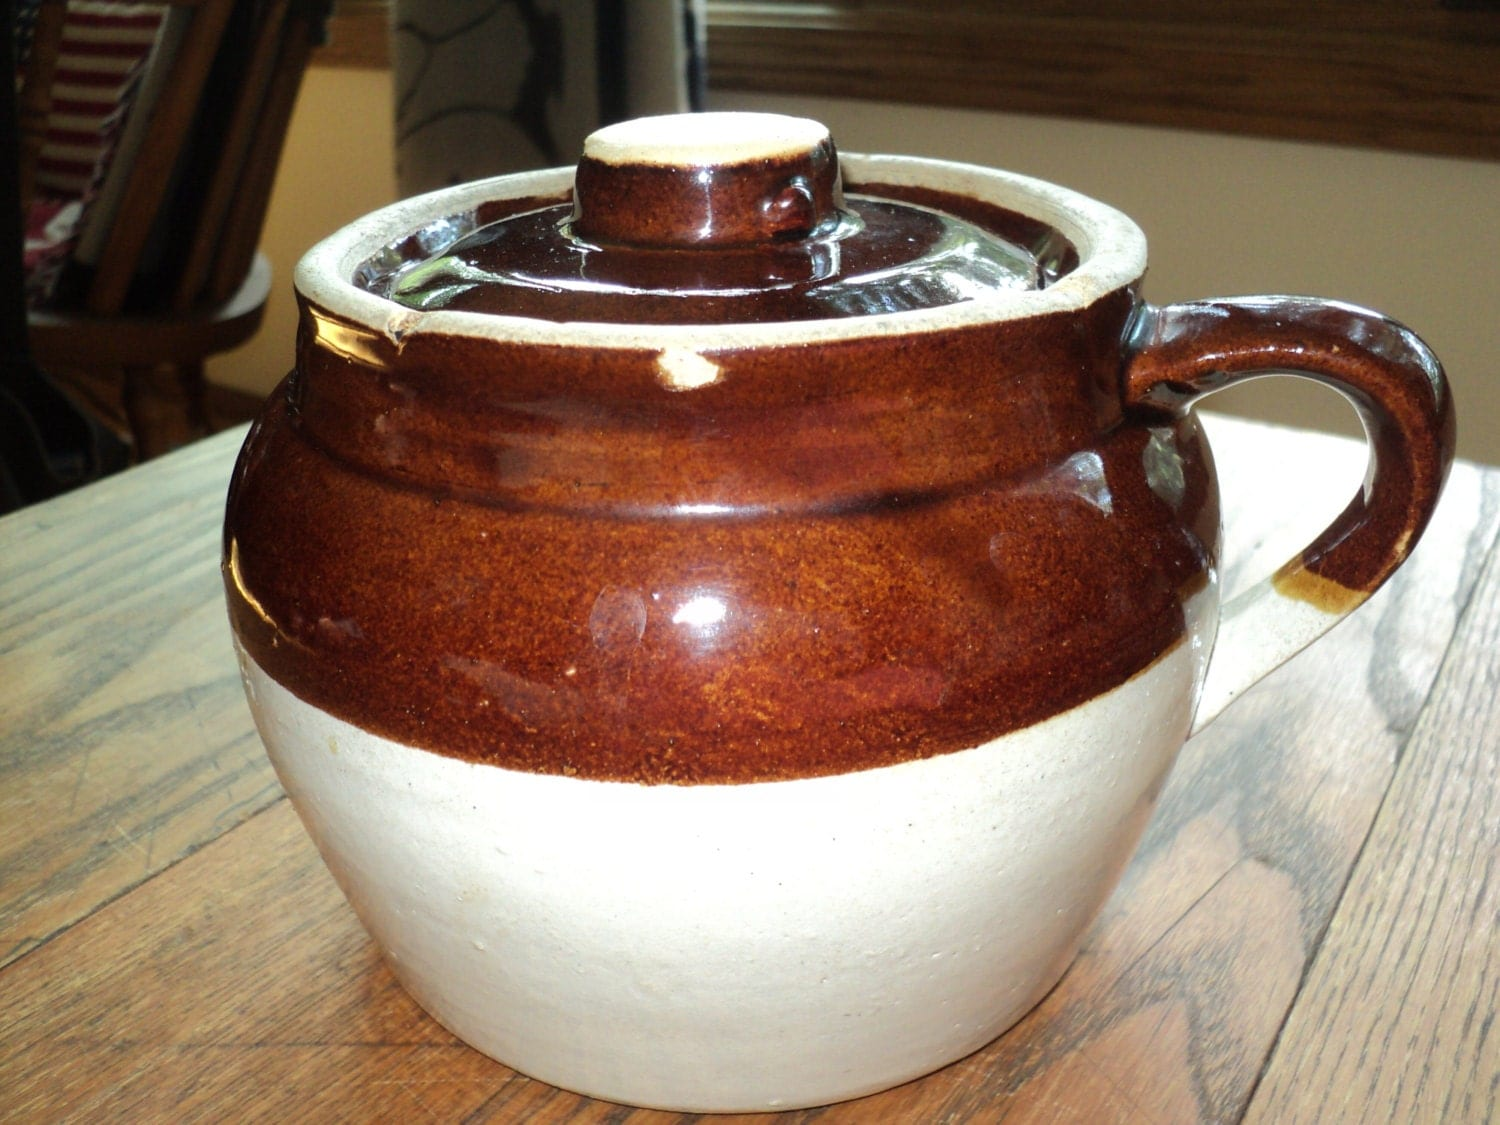 Vintage baked bean pot